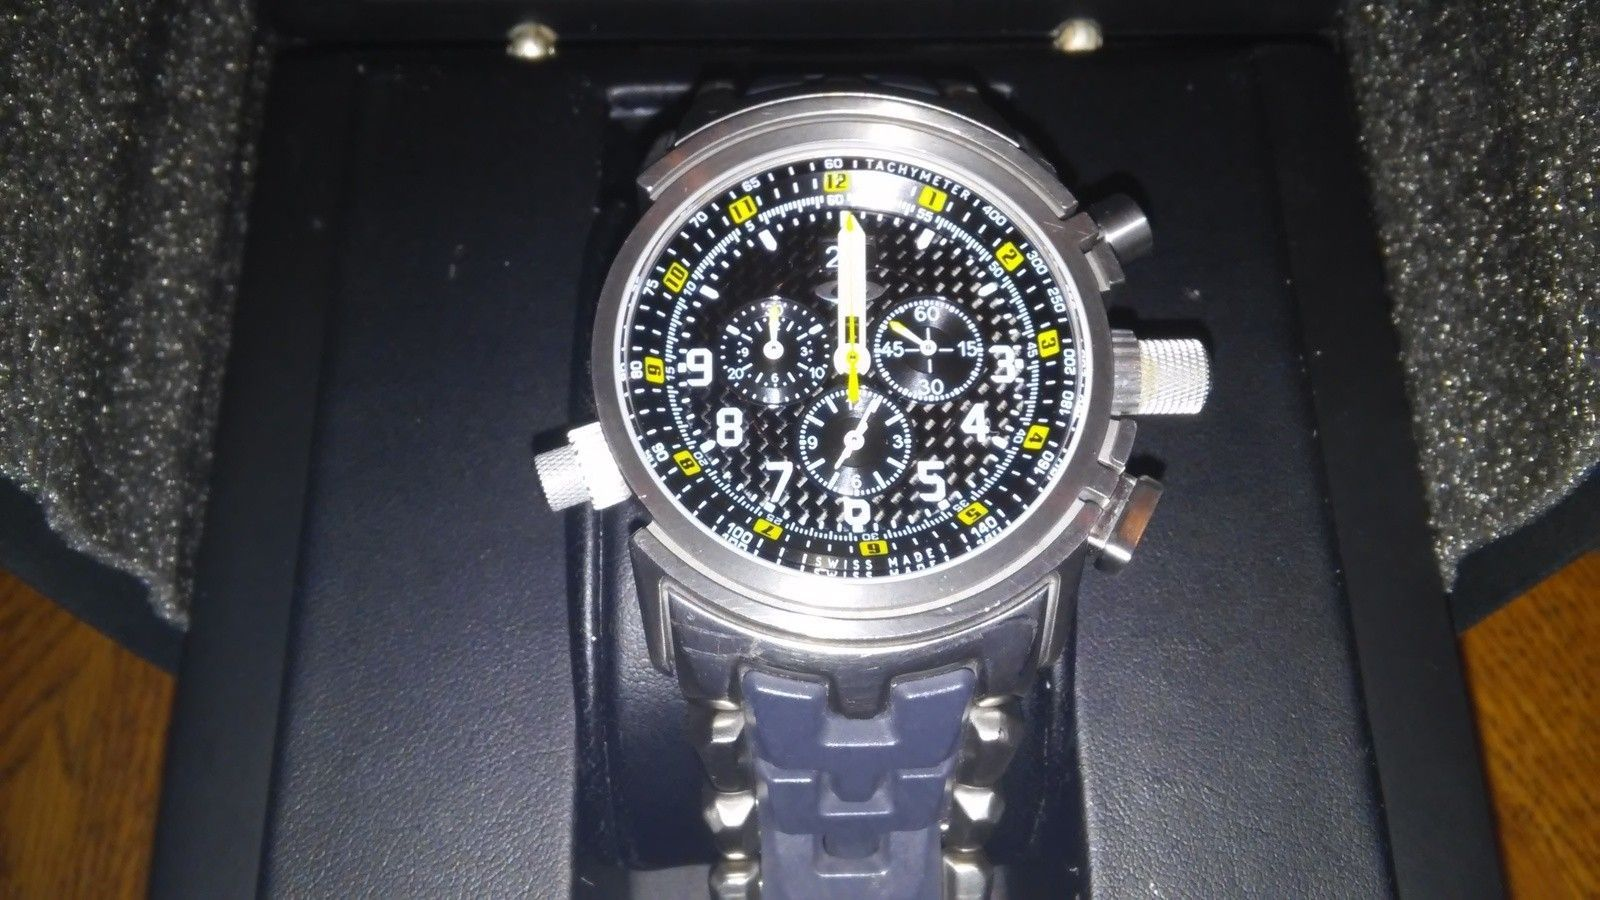 12 gauge titanium/carbon fiber watch - 20150323_153307.jpg